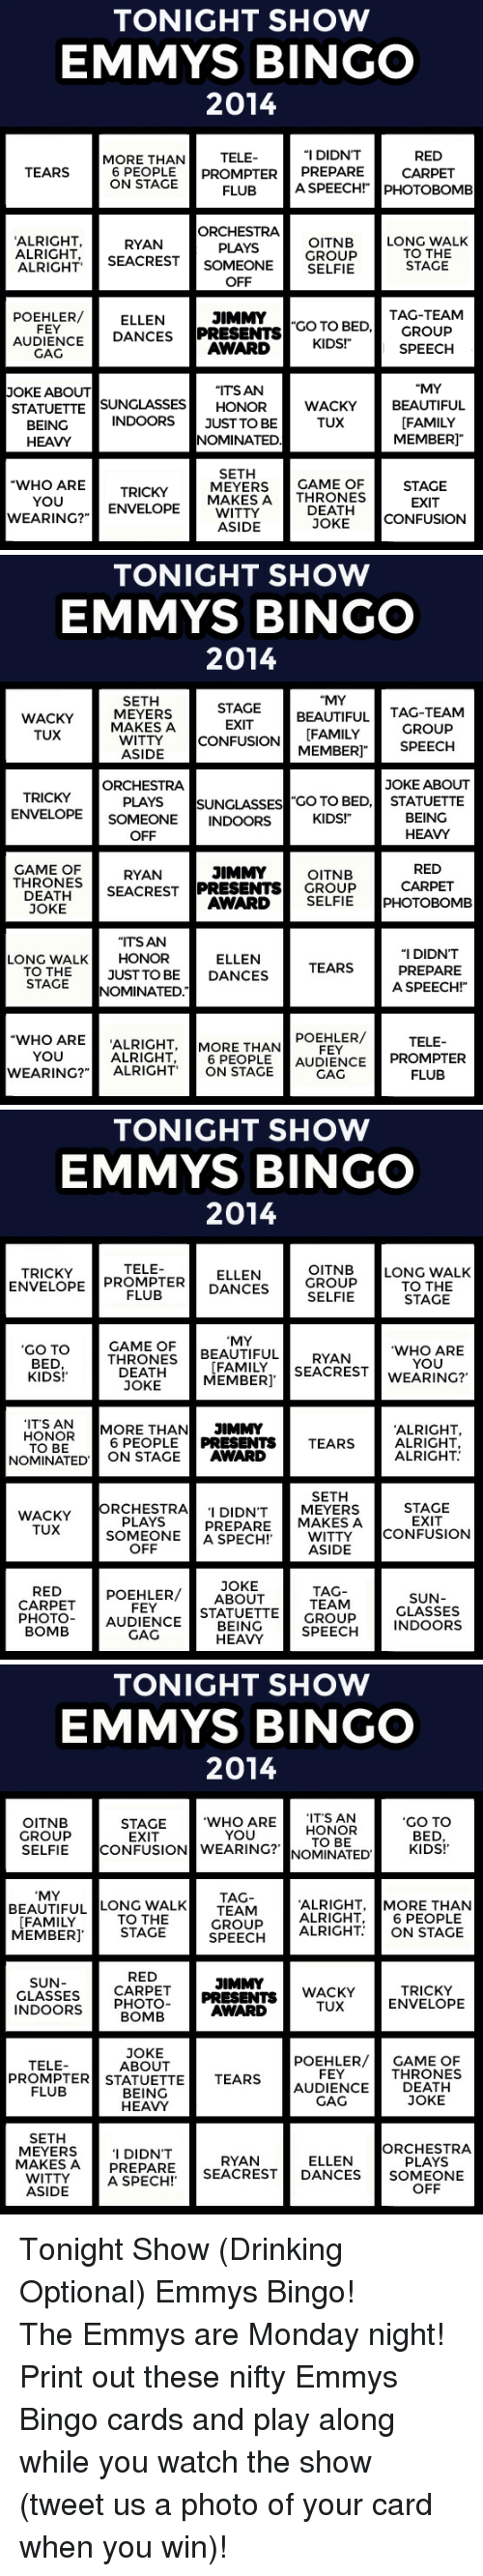 "Game of Thrones: TONIGHT SHOW  EMMYS BINGO  2014  RED  CARPET  ""I DIDN'T  TELE  6 PEOPLE PROMPTERPREPARE  FLUB  MORE THAN  TEARS  ON STAGE  A SPEECH! PHOTOBOMB  ORCHESTRA  PLAYS  ALRIGHT  ALRIGHT SEACREST SOMEONESELFIE  OITNBLONG WALK  GROUP  RYAN  TO THE  STAGE  OFF  POEHLER/ELLEN  AUDIENCE DANCES PRESENTSC  JIMMY  TAG-TEAM  FEY  GO TO BED,GROUP  GAG  AWARD KIDS!""  ""MY  BEAUTIFUL  [FAMILY  MEMBER]  OKE ABOUT  ""ITS AN  STATUETTE SUNGLASSES HONOR  INDOORS  WACKY  TUX  BEING  HEAVY  JUST TO BE  NOMINATED  SETH  WHO ARETRICKYMAKES ADEATH CONFUSION  MEYERSGAME OF  YOU  EXIT  WEARINGT ENESAONESTACE  WITTY  ASIDE  JOKE   TONIGHT SHOW  EMMYS BINGO  2014  ""MY  WACKY  TUX  SETH  MEYERS  MAKESA  BEAUTIFUL TAG-TEAM  EXIT  ente ICONFUSIONİİA[FAMILY GROUP  MEMBERI SPEECH  ASIDE  JOKE ABOUT  ORCHESTRA  PLAYS  ENVELOPE SOMEONE INDOORS  OFF  TRICKY  SUNGLASSES GO TO BED,STATUETTE  KIDS!  BEING  HEAVY  GAME OF  THRONES  RED  CARPET  RYAN  JIMMYOITNB  DEATHSECREST PRESENTS GROUP  JOKE  AWARD  SELFIE PHOTOBOMB  ""ITSAN  LONG WALKHONOR  ""I DIDN'T  ELLEN  DANCES  TEARS PREPARE  TO THEJUST TO BE  STAGE NOMINATED  A SPEECH!""  ""WHO ARE ALRIGHT, MORE THANFEY  POEHLER/  TELE  YOU  ALRIGHT, 6 PEOPLE  GAG  WEARING?ALRIGHT ON STAC AUDIENCE PROMPTER  FLUB   TONIGHT SHOW  EMMYS BINGO  2014  TRICKYE PROSELFIE  TELE  OITNBLONG WALK  GROUP  ENVELOPE PROMPTERELLEN  TO THE  STAGE  DANCES  FLUB  GAME OF  MY  GO TO  BED  KIDS!  WHO ARE  YOU  THRONES BEAUTIFUL  DEATH  JOKE  FAMILYSEACREST WEARING?'  MEMBER]  ,  IT'S AN  ALRIGHT,  6 PEOPLE PRESENTS TEARSALRIGHT  ALRIGHT  HONOR MORE THAN JIMMY  TO BE  NOMINATED' ON STAGE AWARD  SETH  WACKY  TUX  ORCHESTRA  PLAYS  I DIDN'T MEYERS  PREPARE MAKES A  STAGE  EXIT  SOMEONE A SPECH!  WITTY CONFUSION  OFF  ASIDE  RED  CARPET POEHLER/JOKE  TAG  TEAM  SUN  GLASSES  FEY  PHOTO-AUDIENCEBEING  STATUETTEGROUP  BOMB  SPEH INDOORS  GAG  HEAVY   TONIGHT SHOW  EMMYS BINGO  2014  OITNB  GROUP  SELFIE CONFUSIONW  WHO AREIT'S AN  WEARING?' NOMINATED.  GO TO  BED  KIDS!  STAGE  EXIT  HONOR  TO BE  YOU  MY  BEAUTIFUL LONG WALKTAG  ALRIGHT, MORE THAN  TO THE  MEMBERI STAGE  TEAM  GROUP ALRIGHT  SPEECH ALRIGHT  6 PEOPLE  ON STAGE  FAMILY  RED  GLASSES CARPETJIMMY  BOMB  SUN  ESENTS WACKY  AWARD  TRICKY  ENVELOPE  TUX  JOKE  TELE  ABOUT  POEHLER/ GAME OF  FEY  THRONES  PROMPTER STATUETTE TEARS  FLUB  BEING  AUDIENCEDEATH  GAG  JOKE  HEAVY  SETH  MAKES A PREPARE 